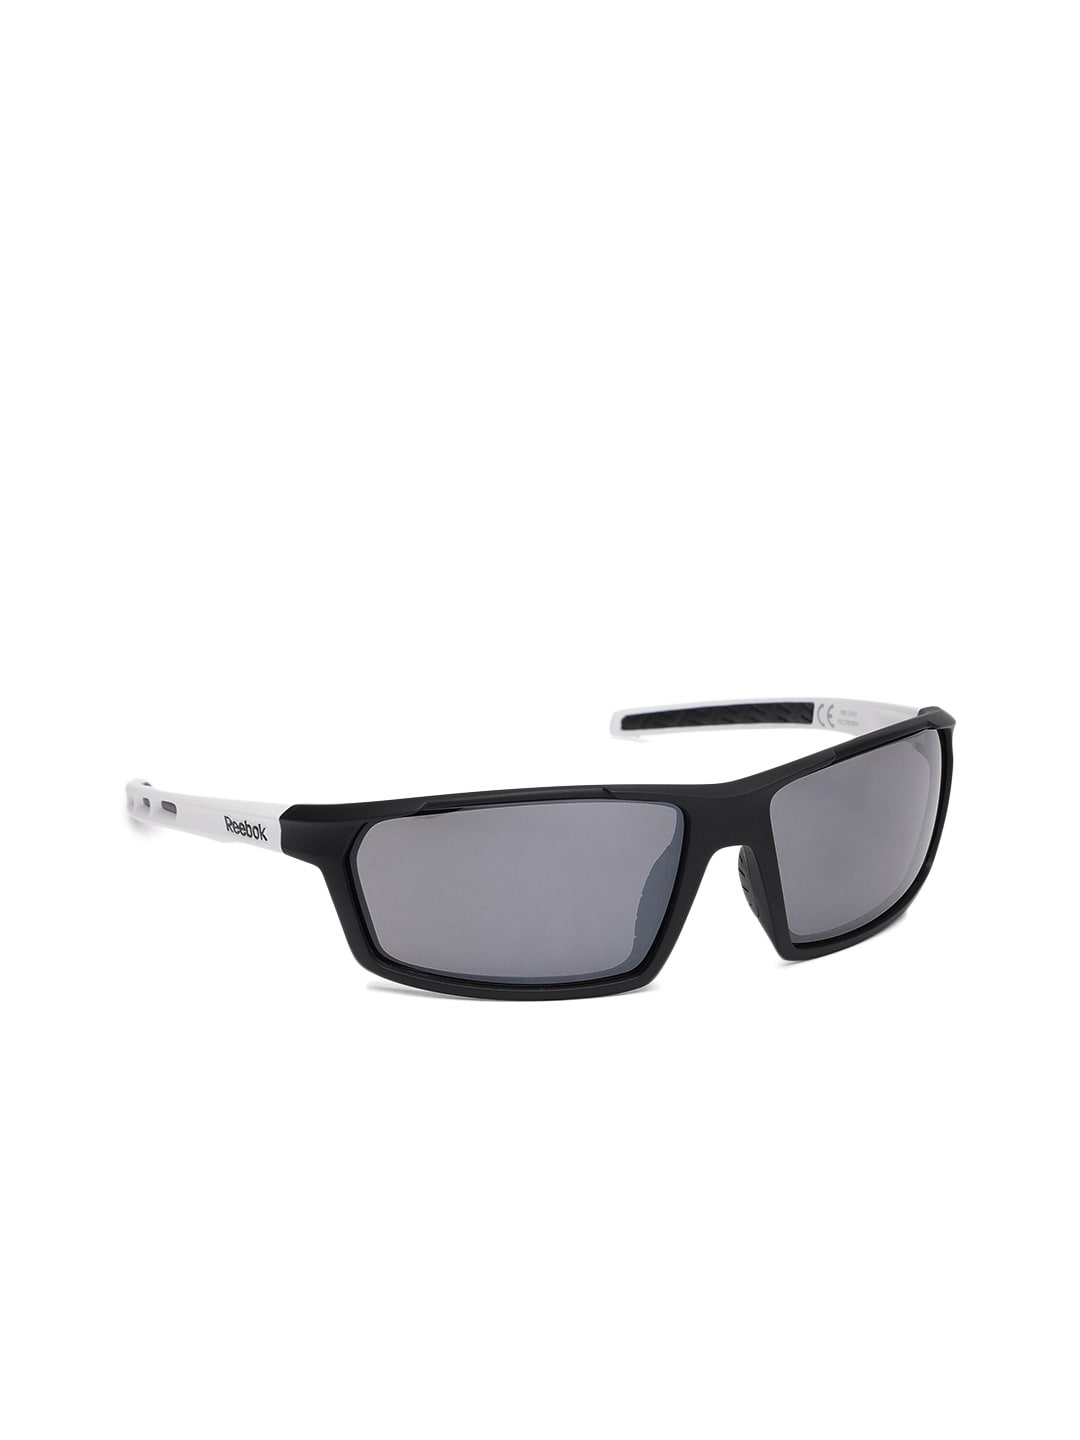 a9784892d99 Reebok Sunglasses Frames Tops - Buy Reebok Sunglasses Frames Tops online in  India